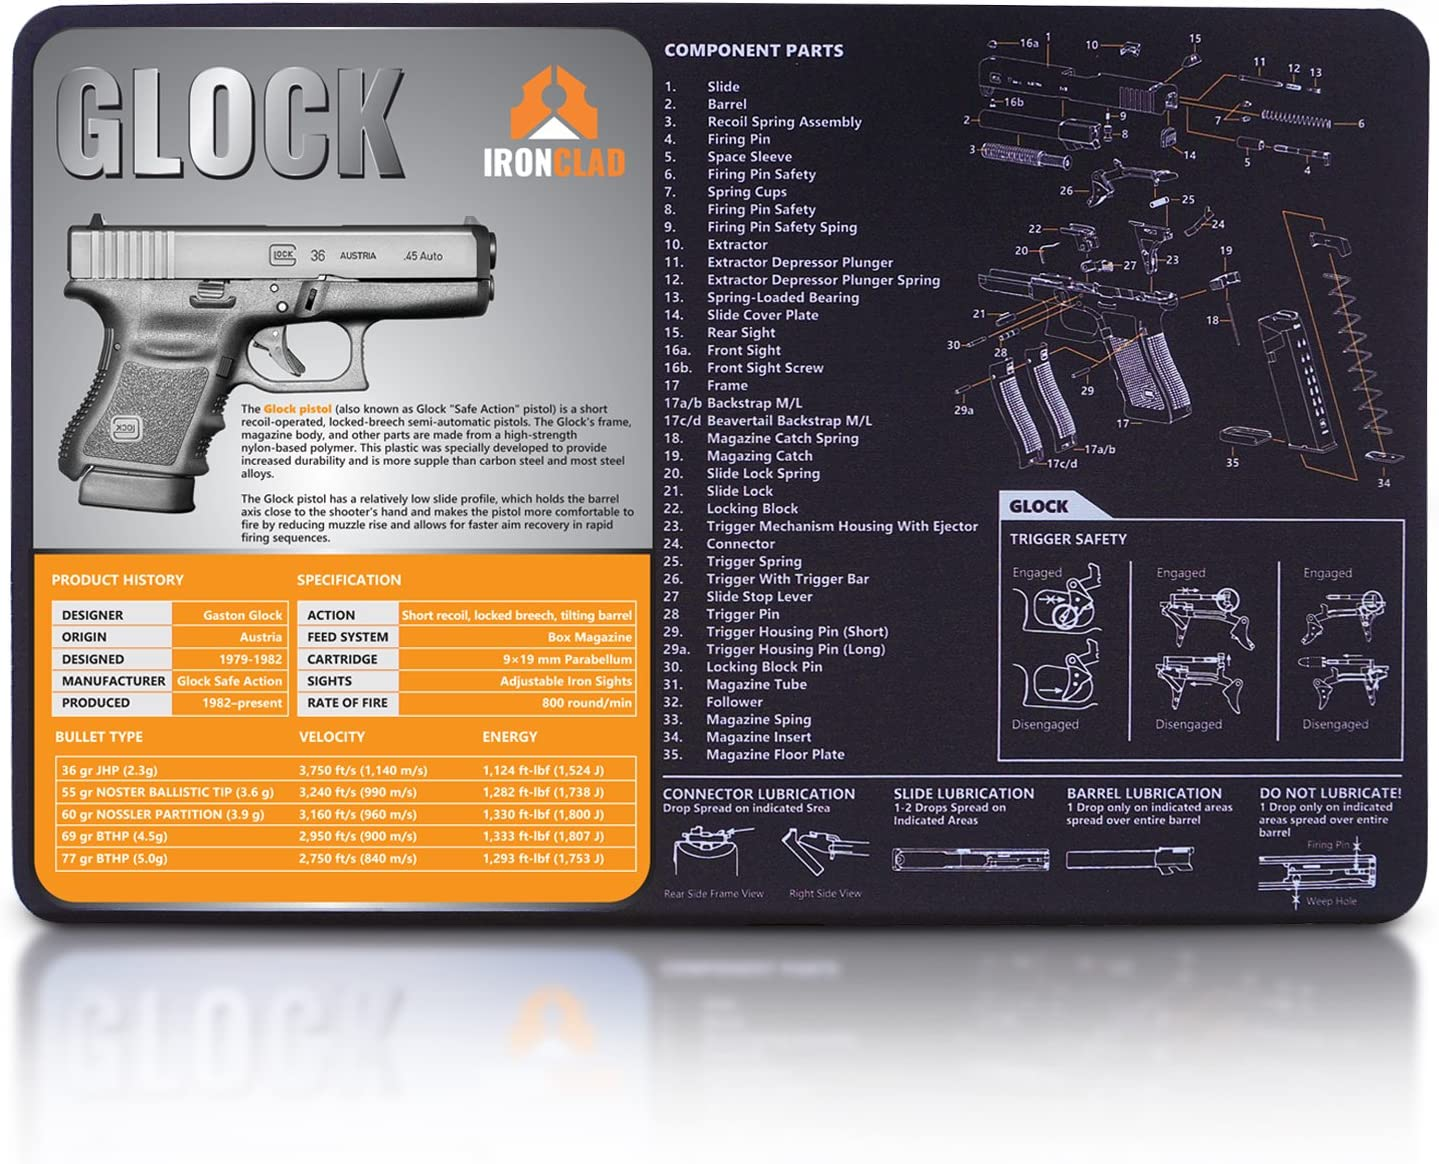 Ironclad Cleaning Mat Compatible for Glock - 3mm Neoprene - 17 x 11 Inches Waterproof - Oil Resistant - Hand Gun Cleaning Mat - Detailed Diagram and Assembly Instruction - 9mm Gun Cleaning Mat : Sports & Outdoors